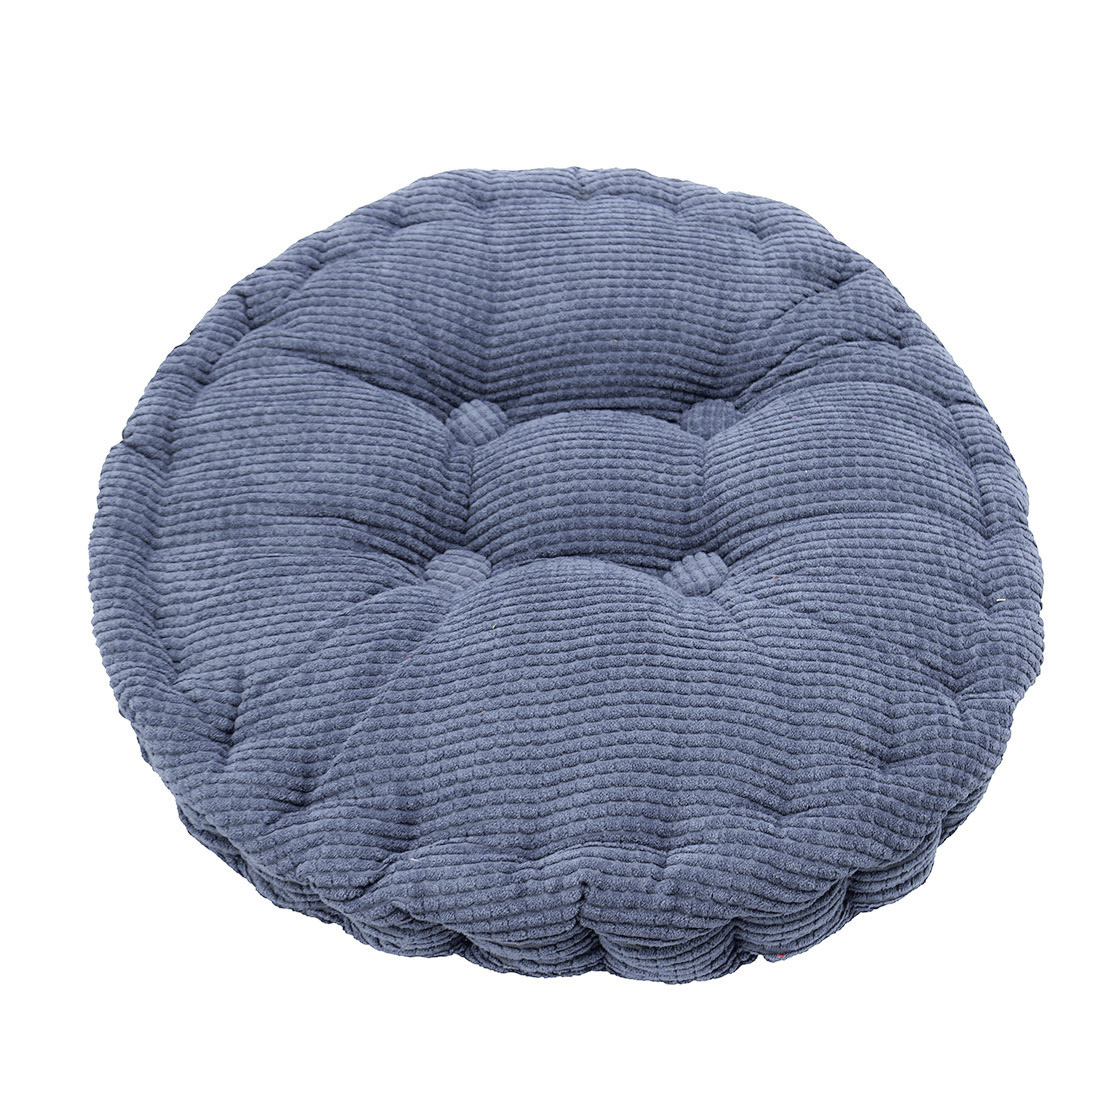 Home Office Corduroy Round Shaped Sofa Floor Chair Seat Cushion Pad Blue 40cm Dia